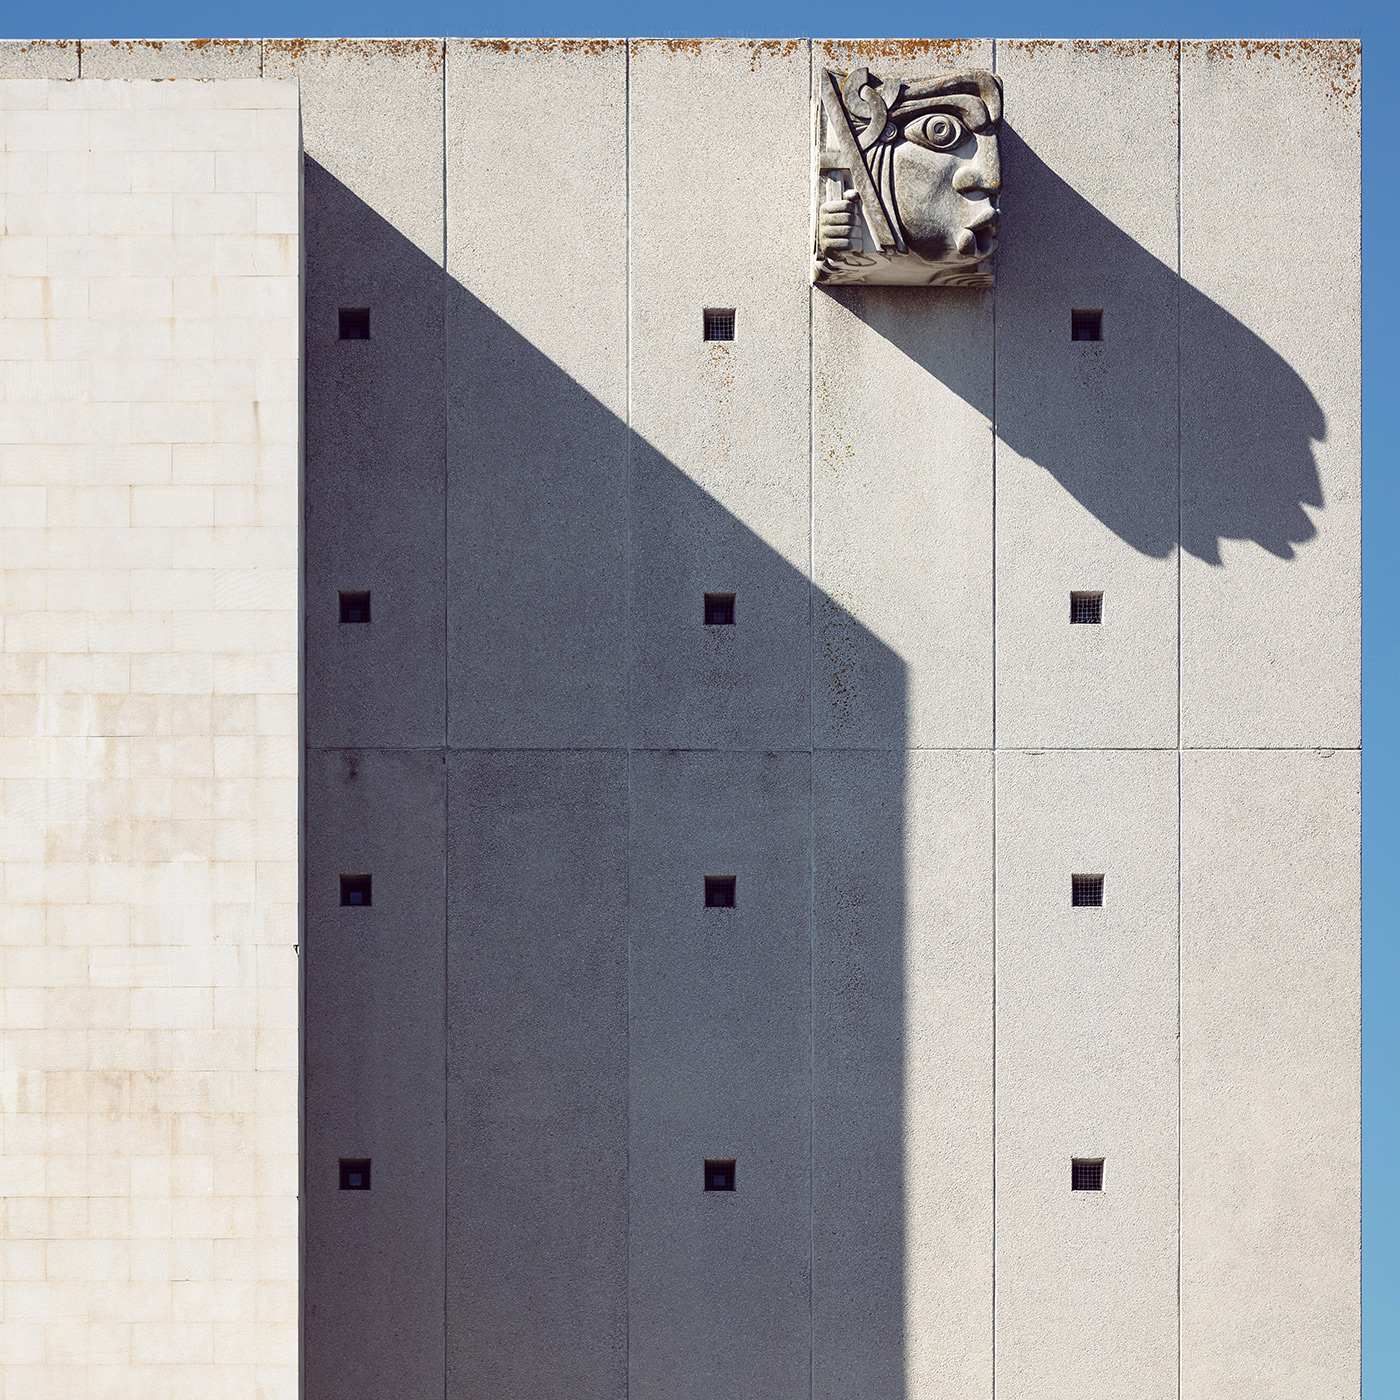 National Archive of Torre do Tombo . Location: Lisbon, Portugal . Architect: New Torre do Tombo archive building - Ateliers Associados and sculptor José Aurélio